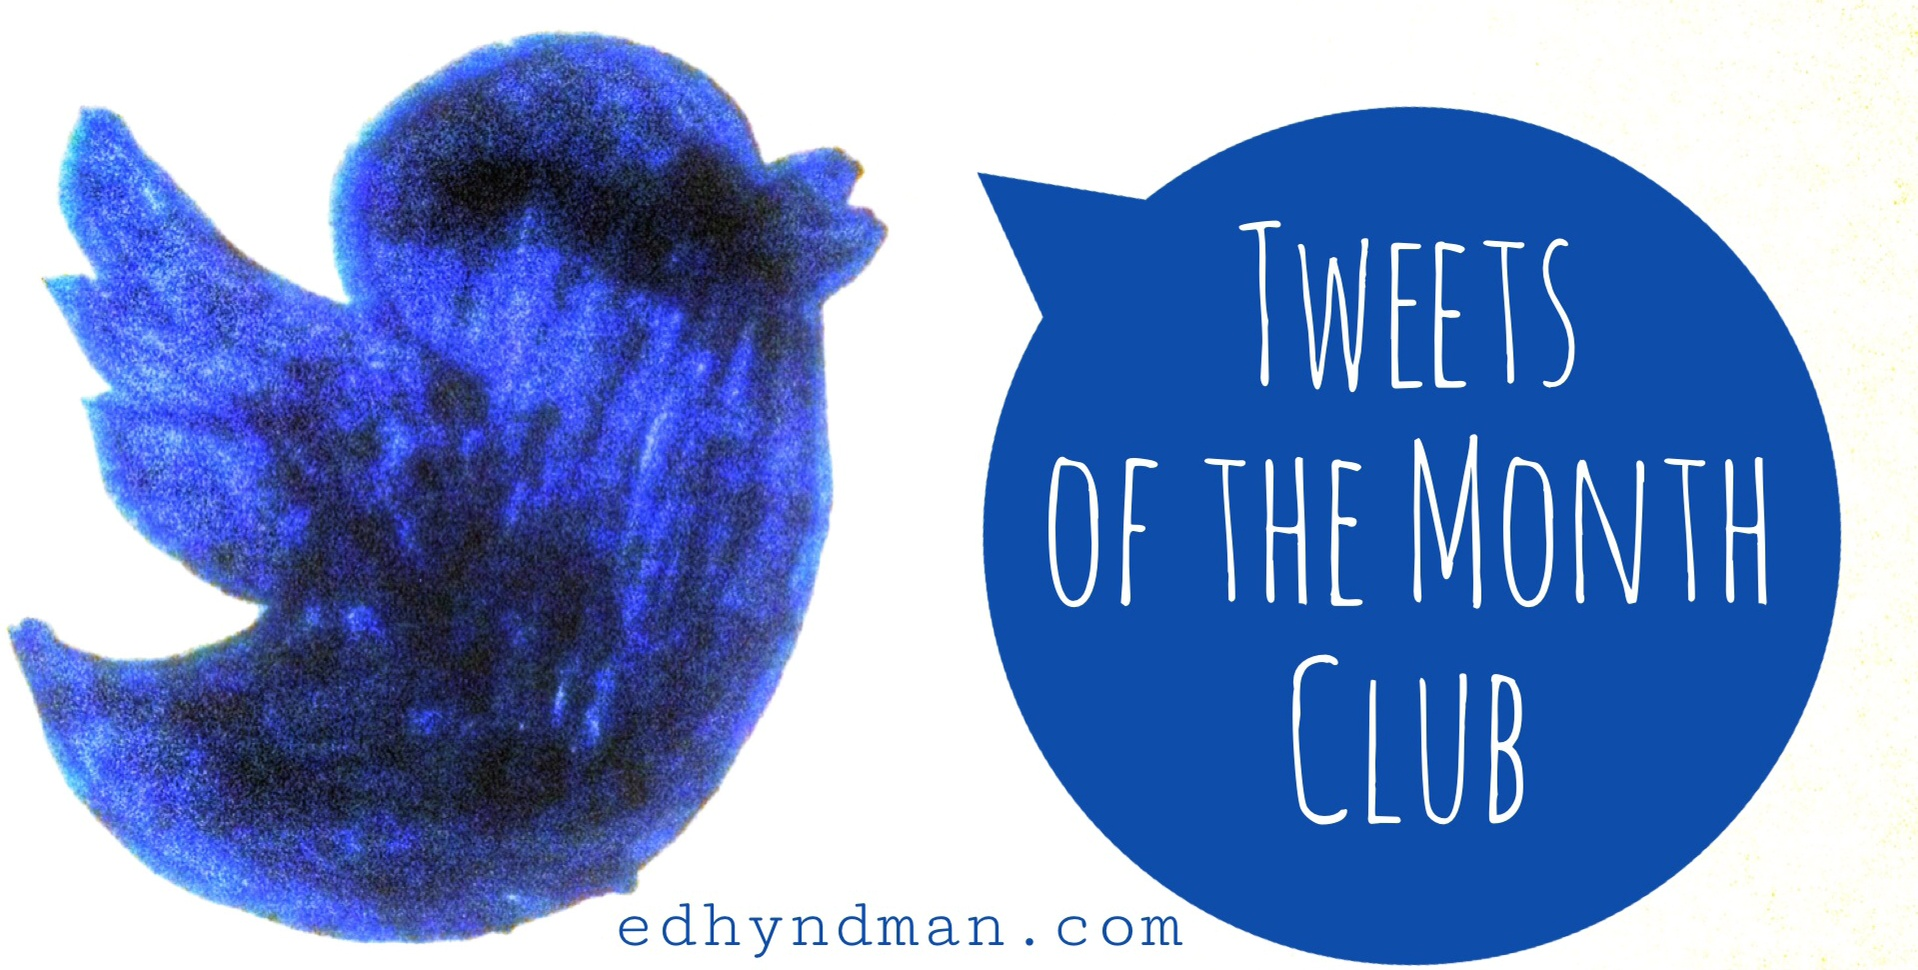 Tweets of the Month Club | June + July 2018